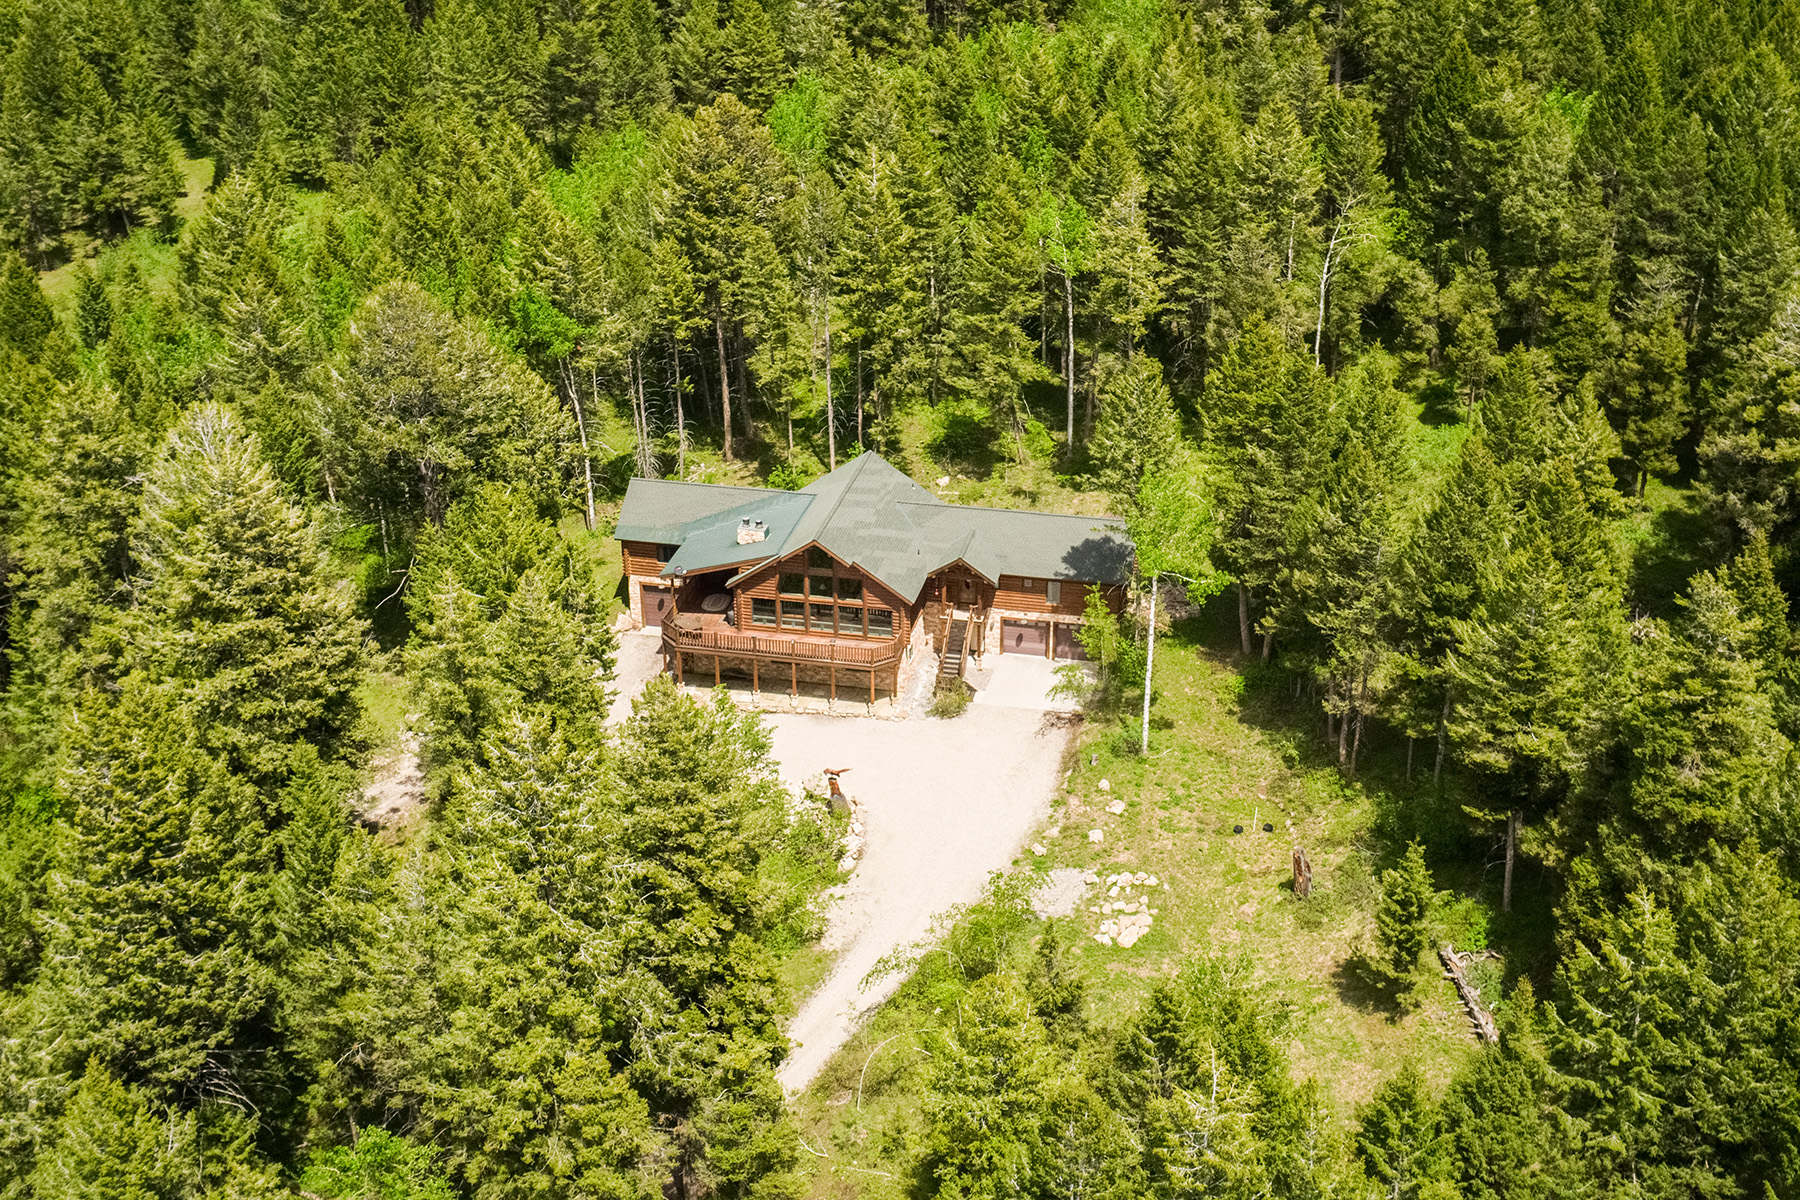 Single Family Homes for Active at Private Mountain Retreat in the Trees 3415 Sorensen Creek Dr Victor, Idaho 83455 United States